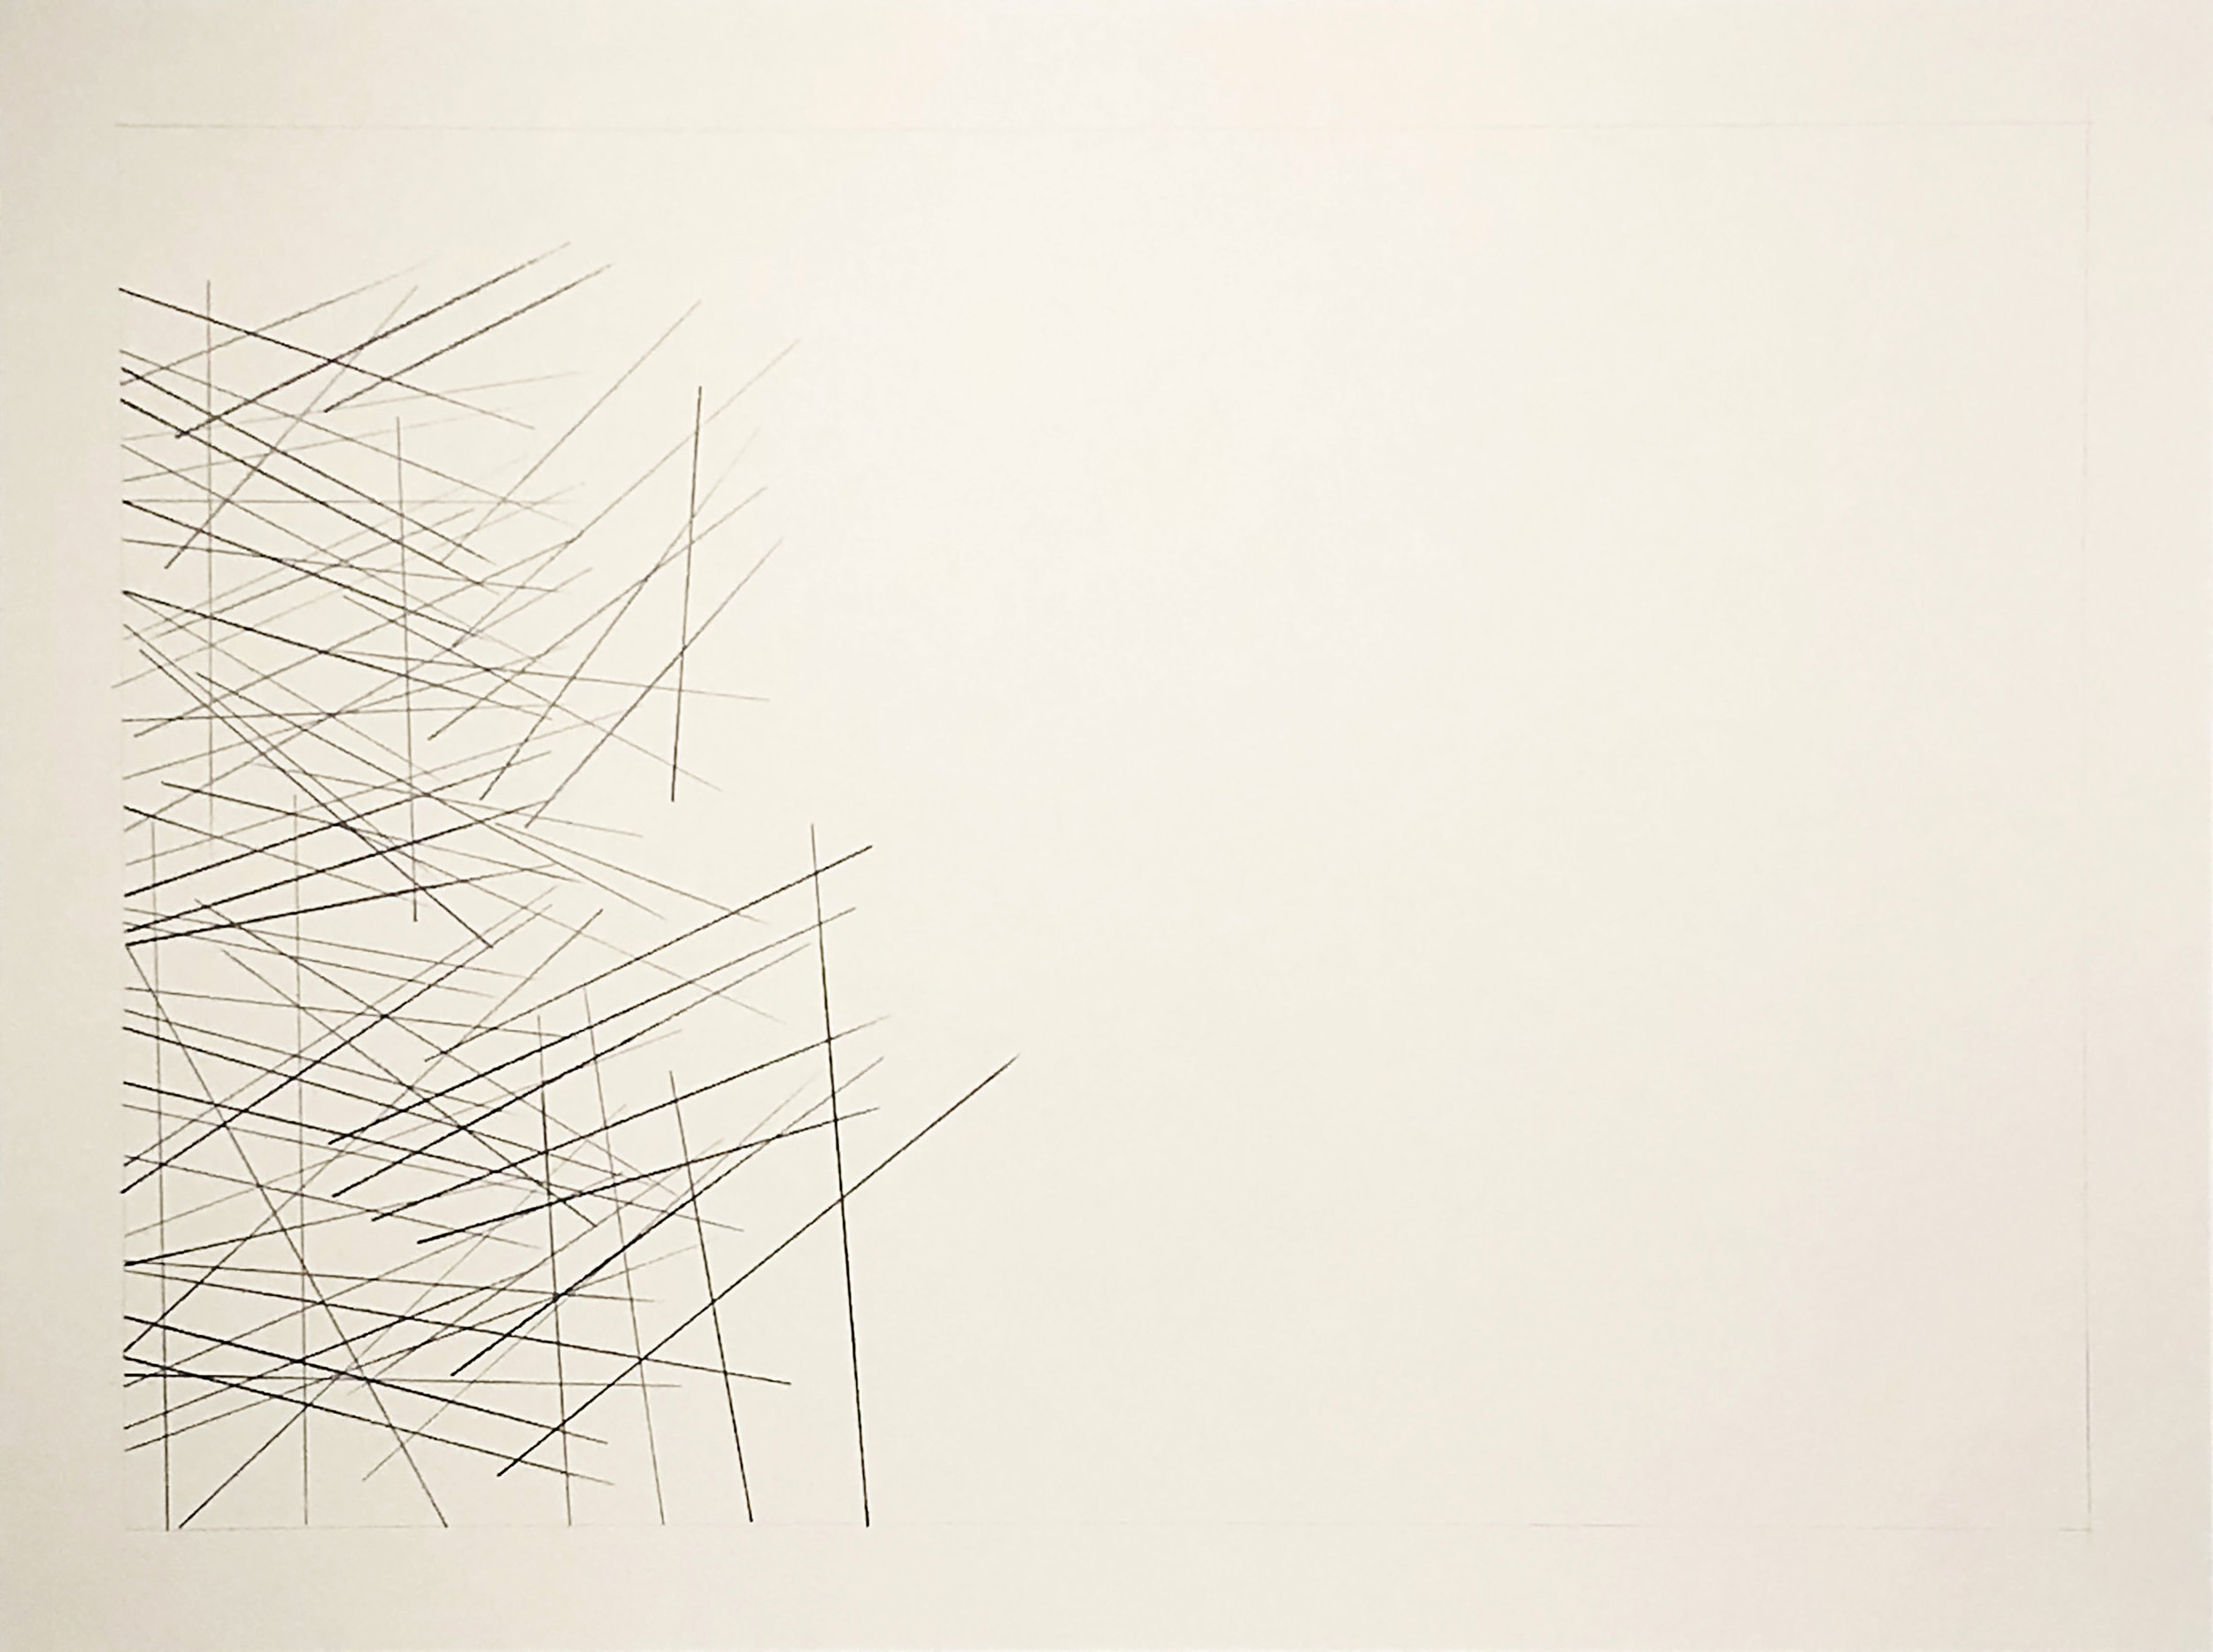 Talca, Chile -35.4217, -71.6196,  2018  Graphite on paper  18H x 24W inches unframed  21.75H x 27.75W inches framed